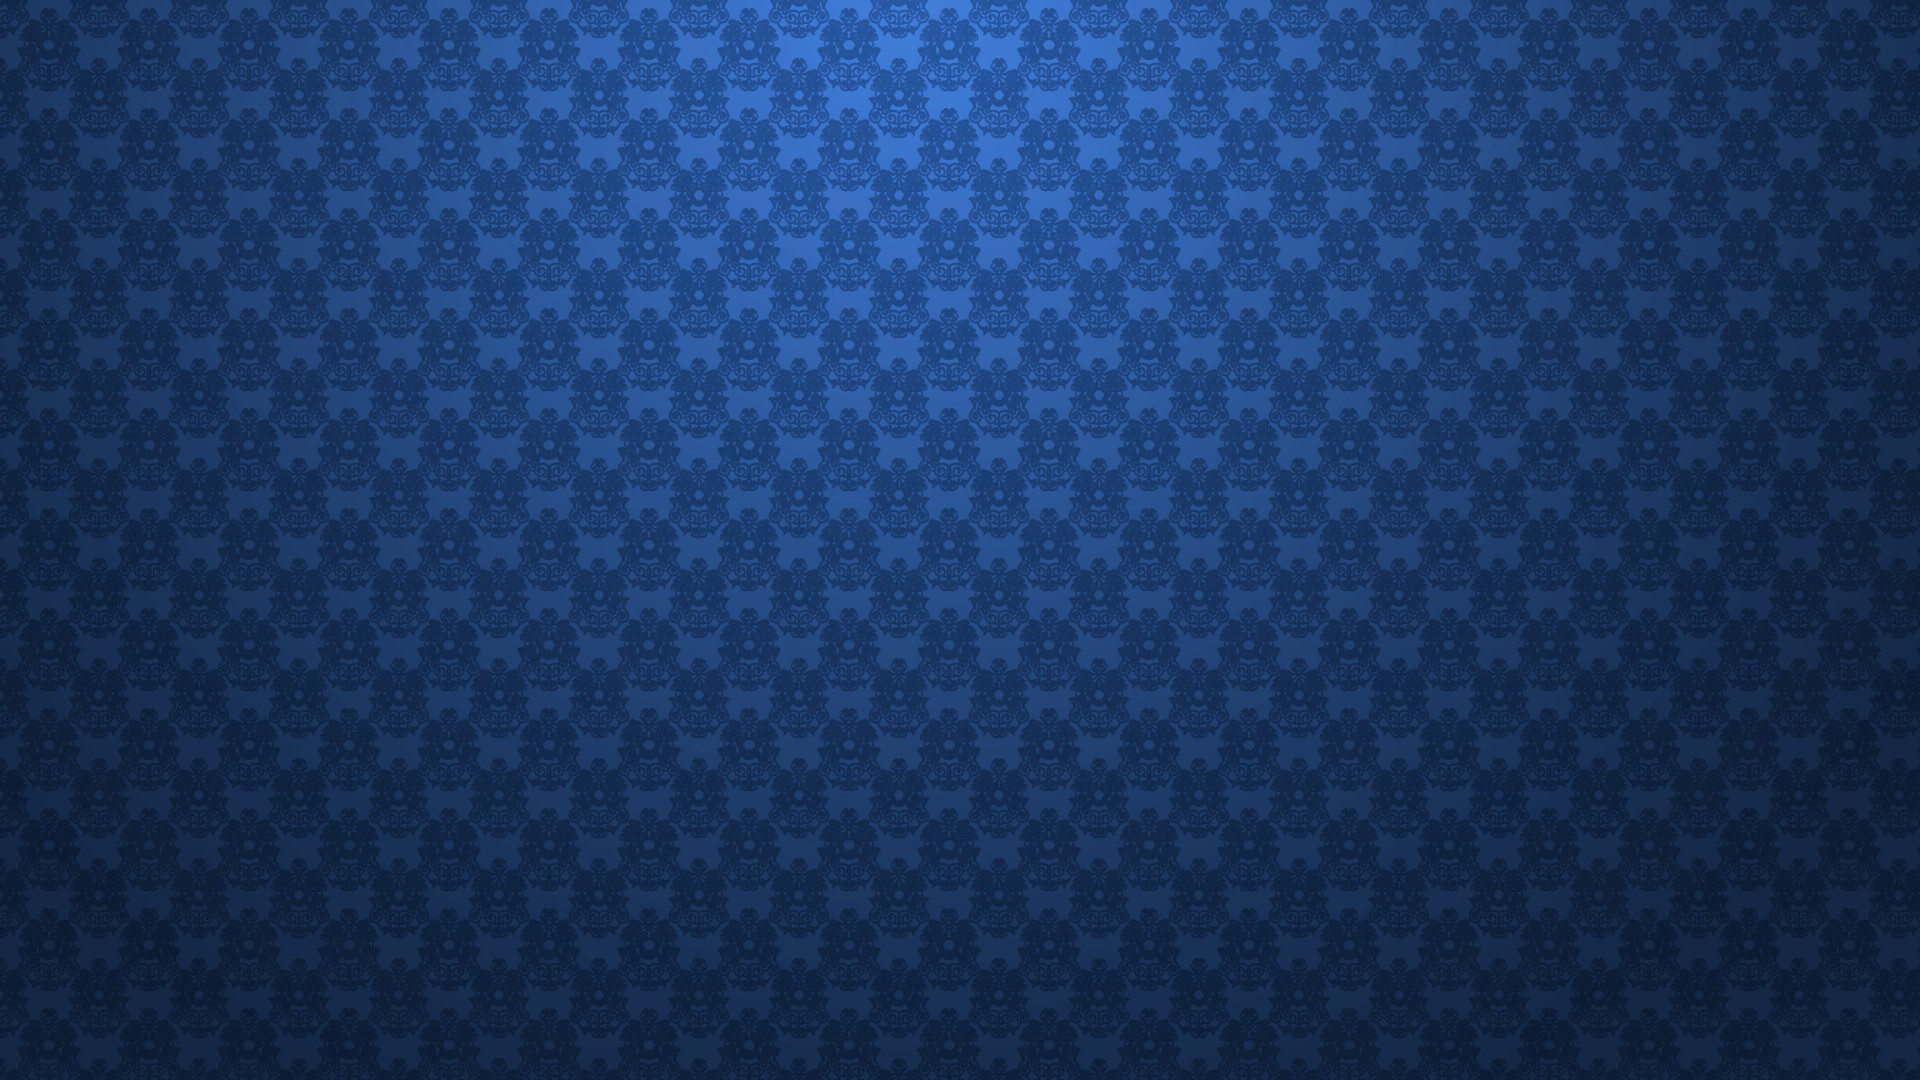 Dark Blue Background Images Wallpapertag: Royal Blue Backgrounds ·① WallpaperTag